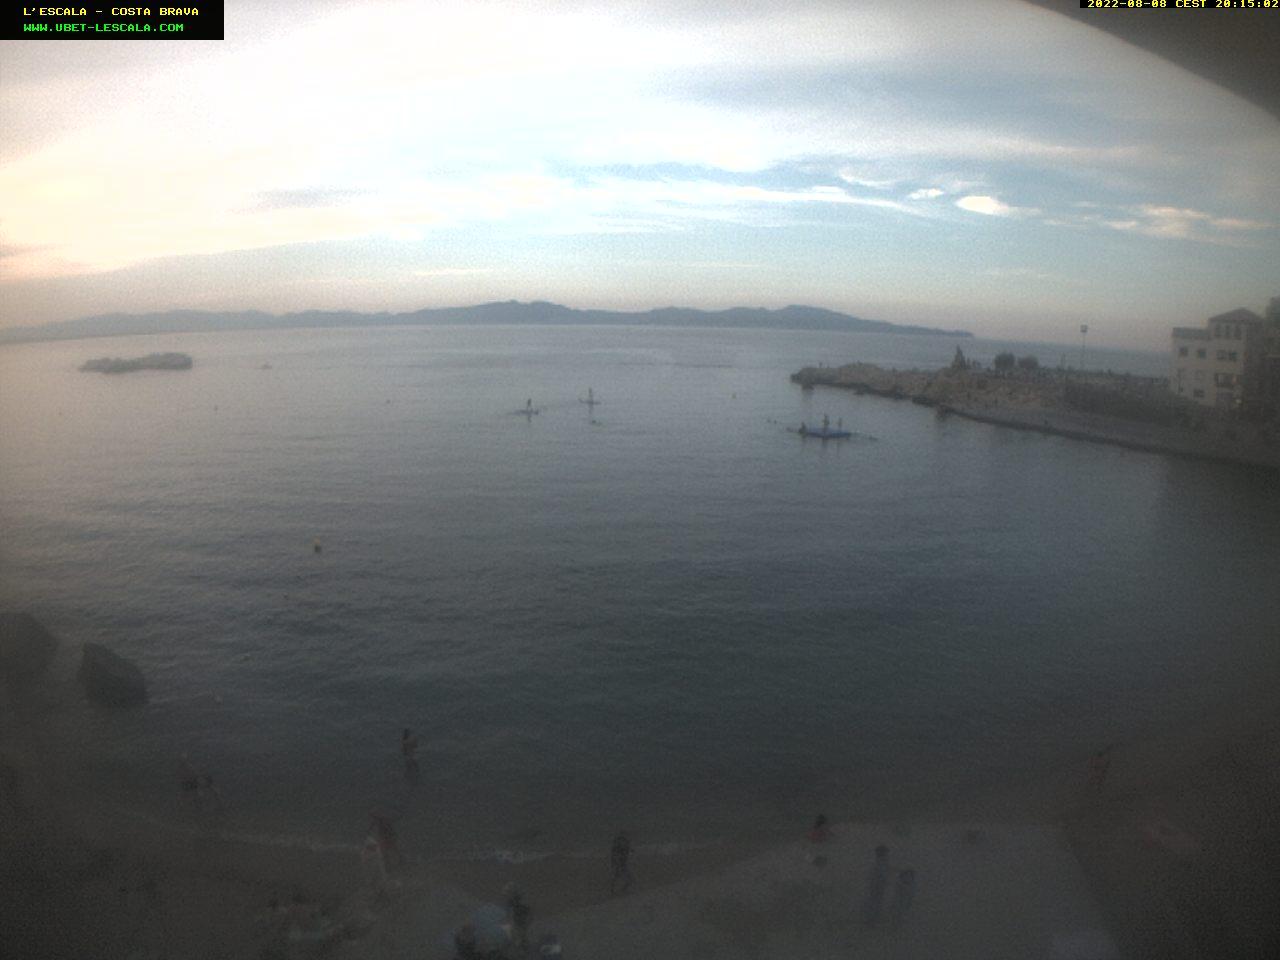 Webcam Plage Vieille Ville – L'Escala